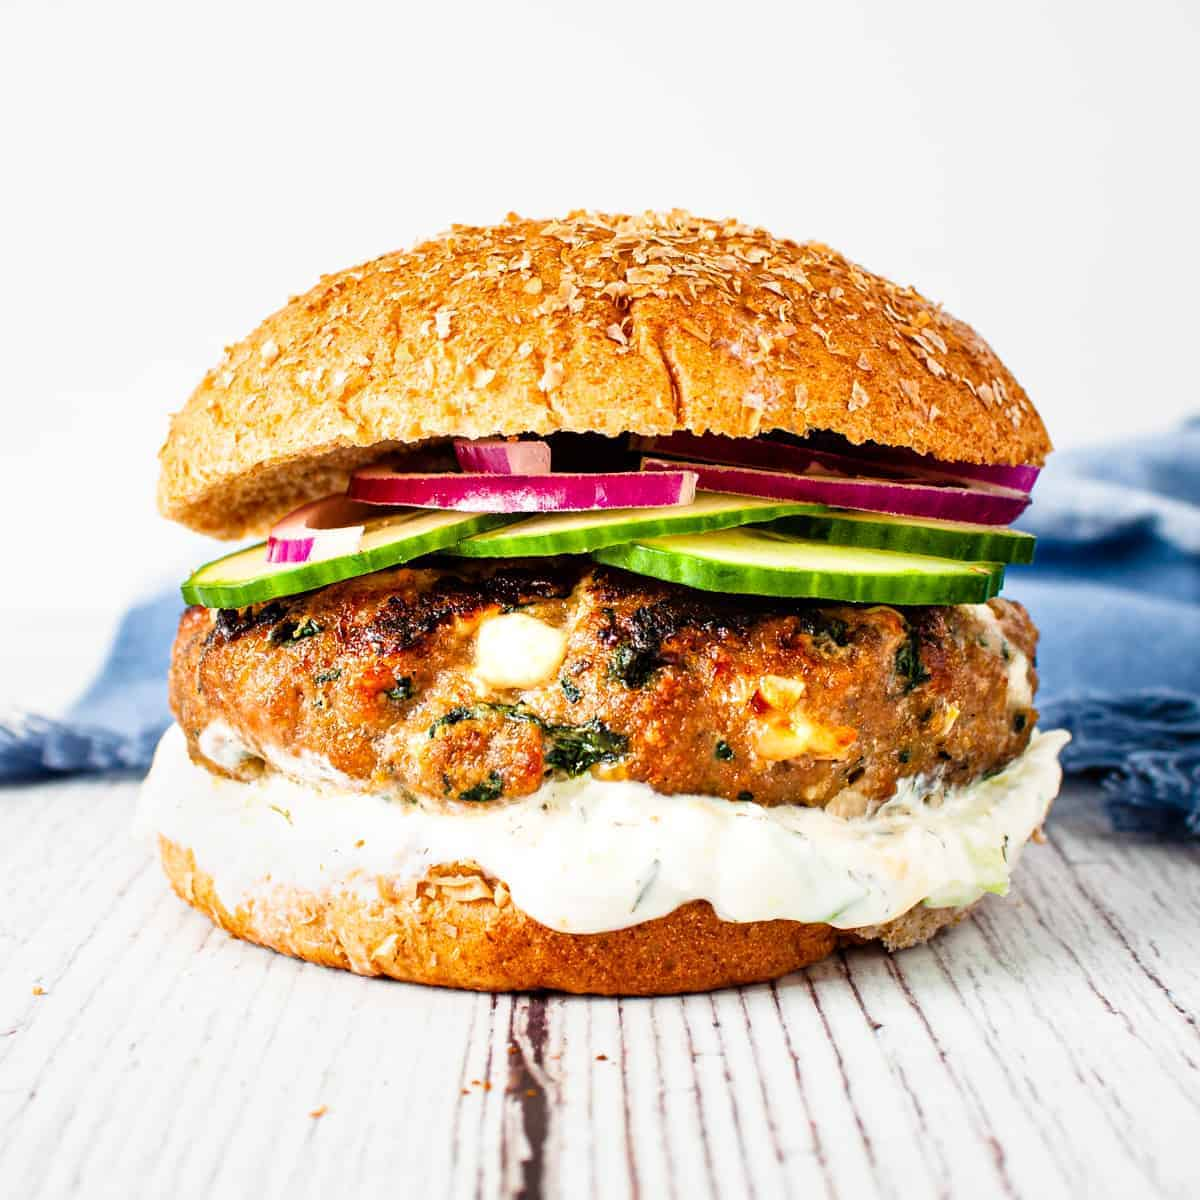 Close up image of a spinach and feta turkey burger on a wheat bun with a thick spread of tzatziki sauce and topped with sliced cucumber and red onion.